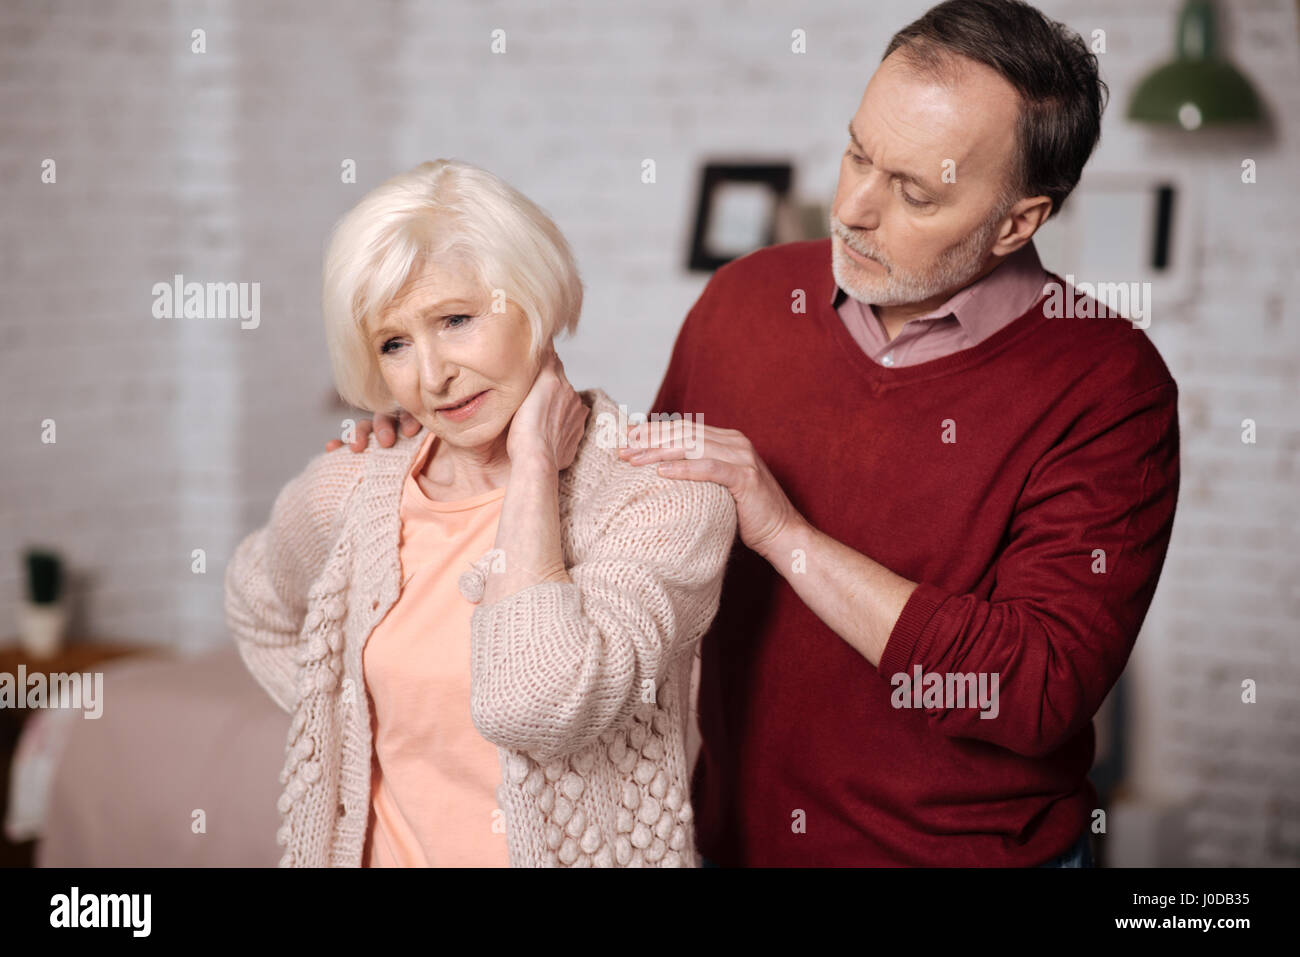 Feeling spasm. Pretty elderly woman standing and touching her aching neck while her husband supporting her. - Stock Image